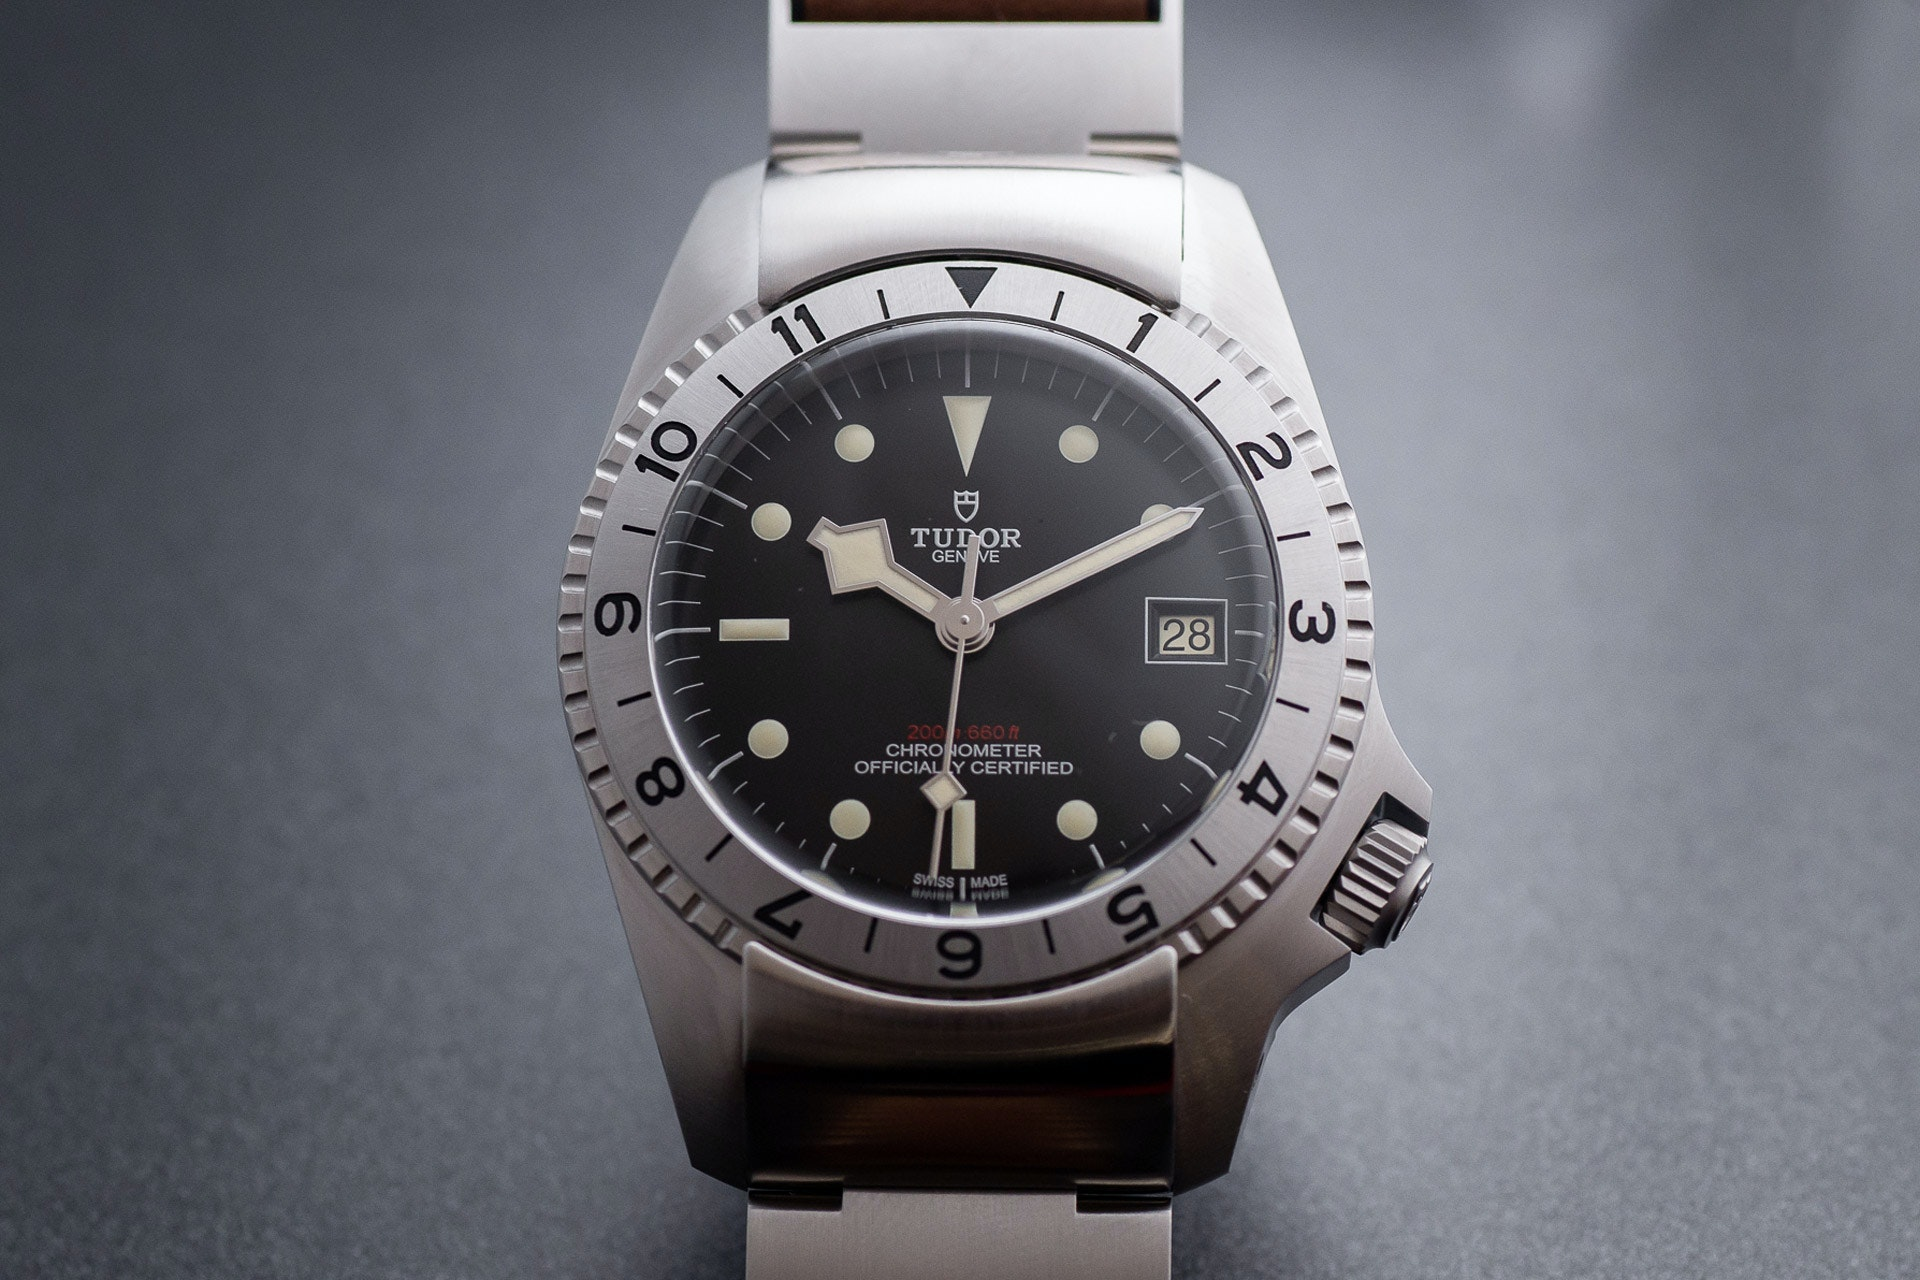 Introducing the P01: The pride and joy of Tudor at Baselworld 2019